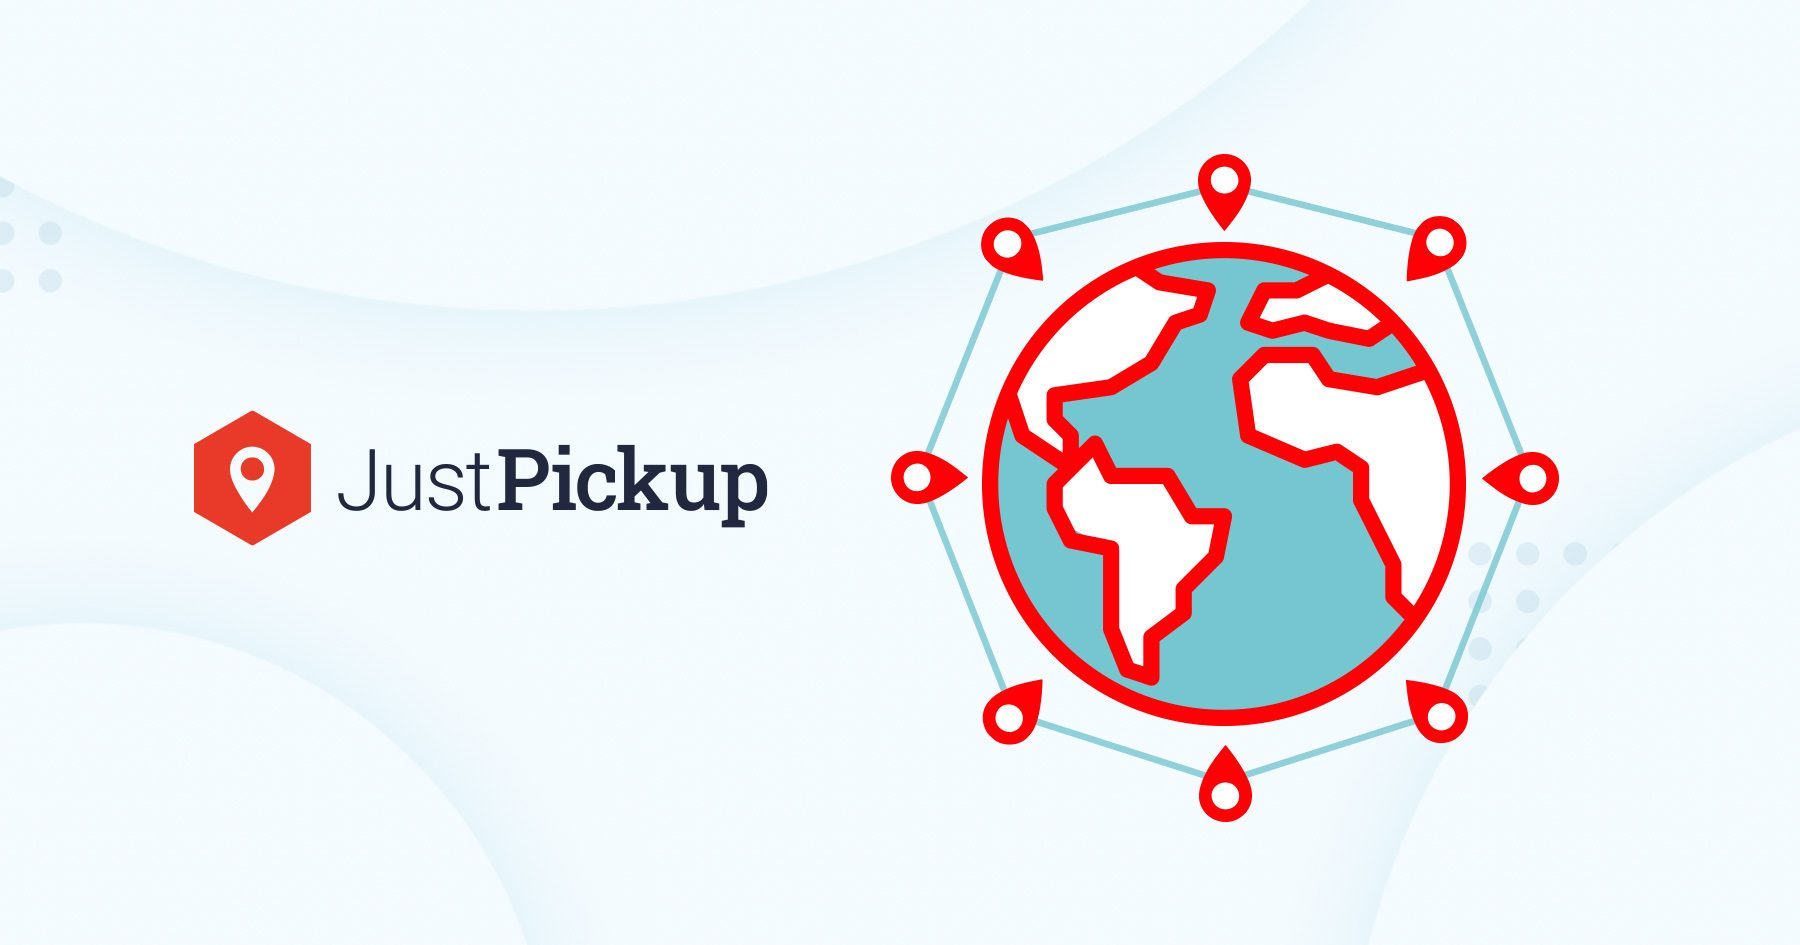 JustPickup, the Online Marketplace and Curbside Pickup Tool, Launches Worldwide